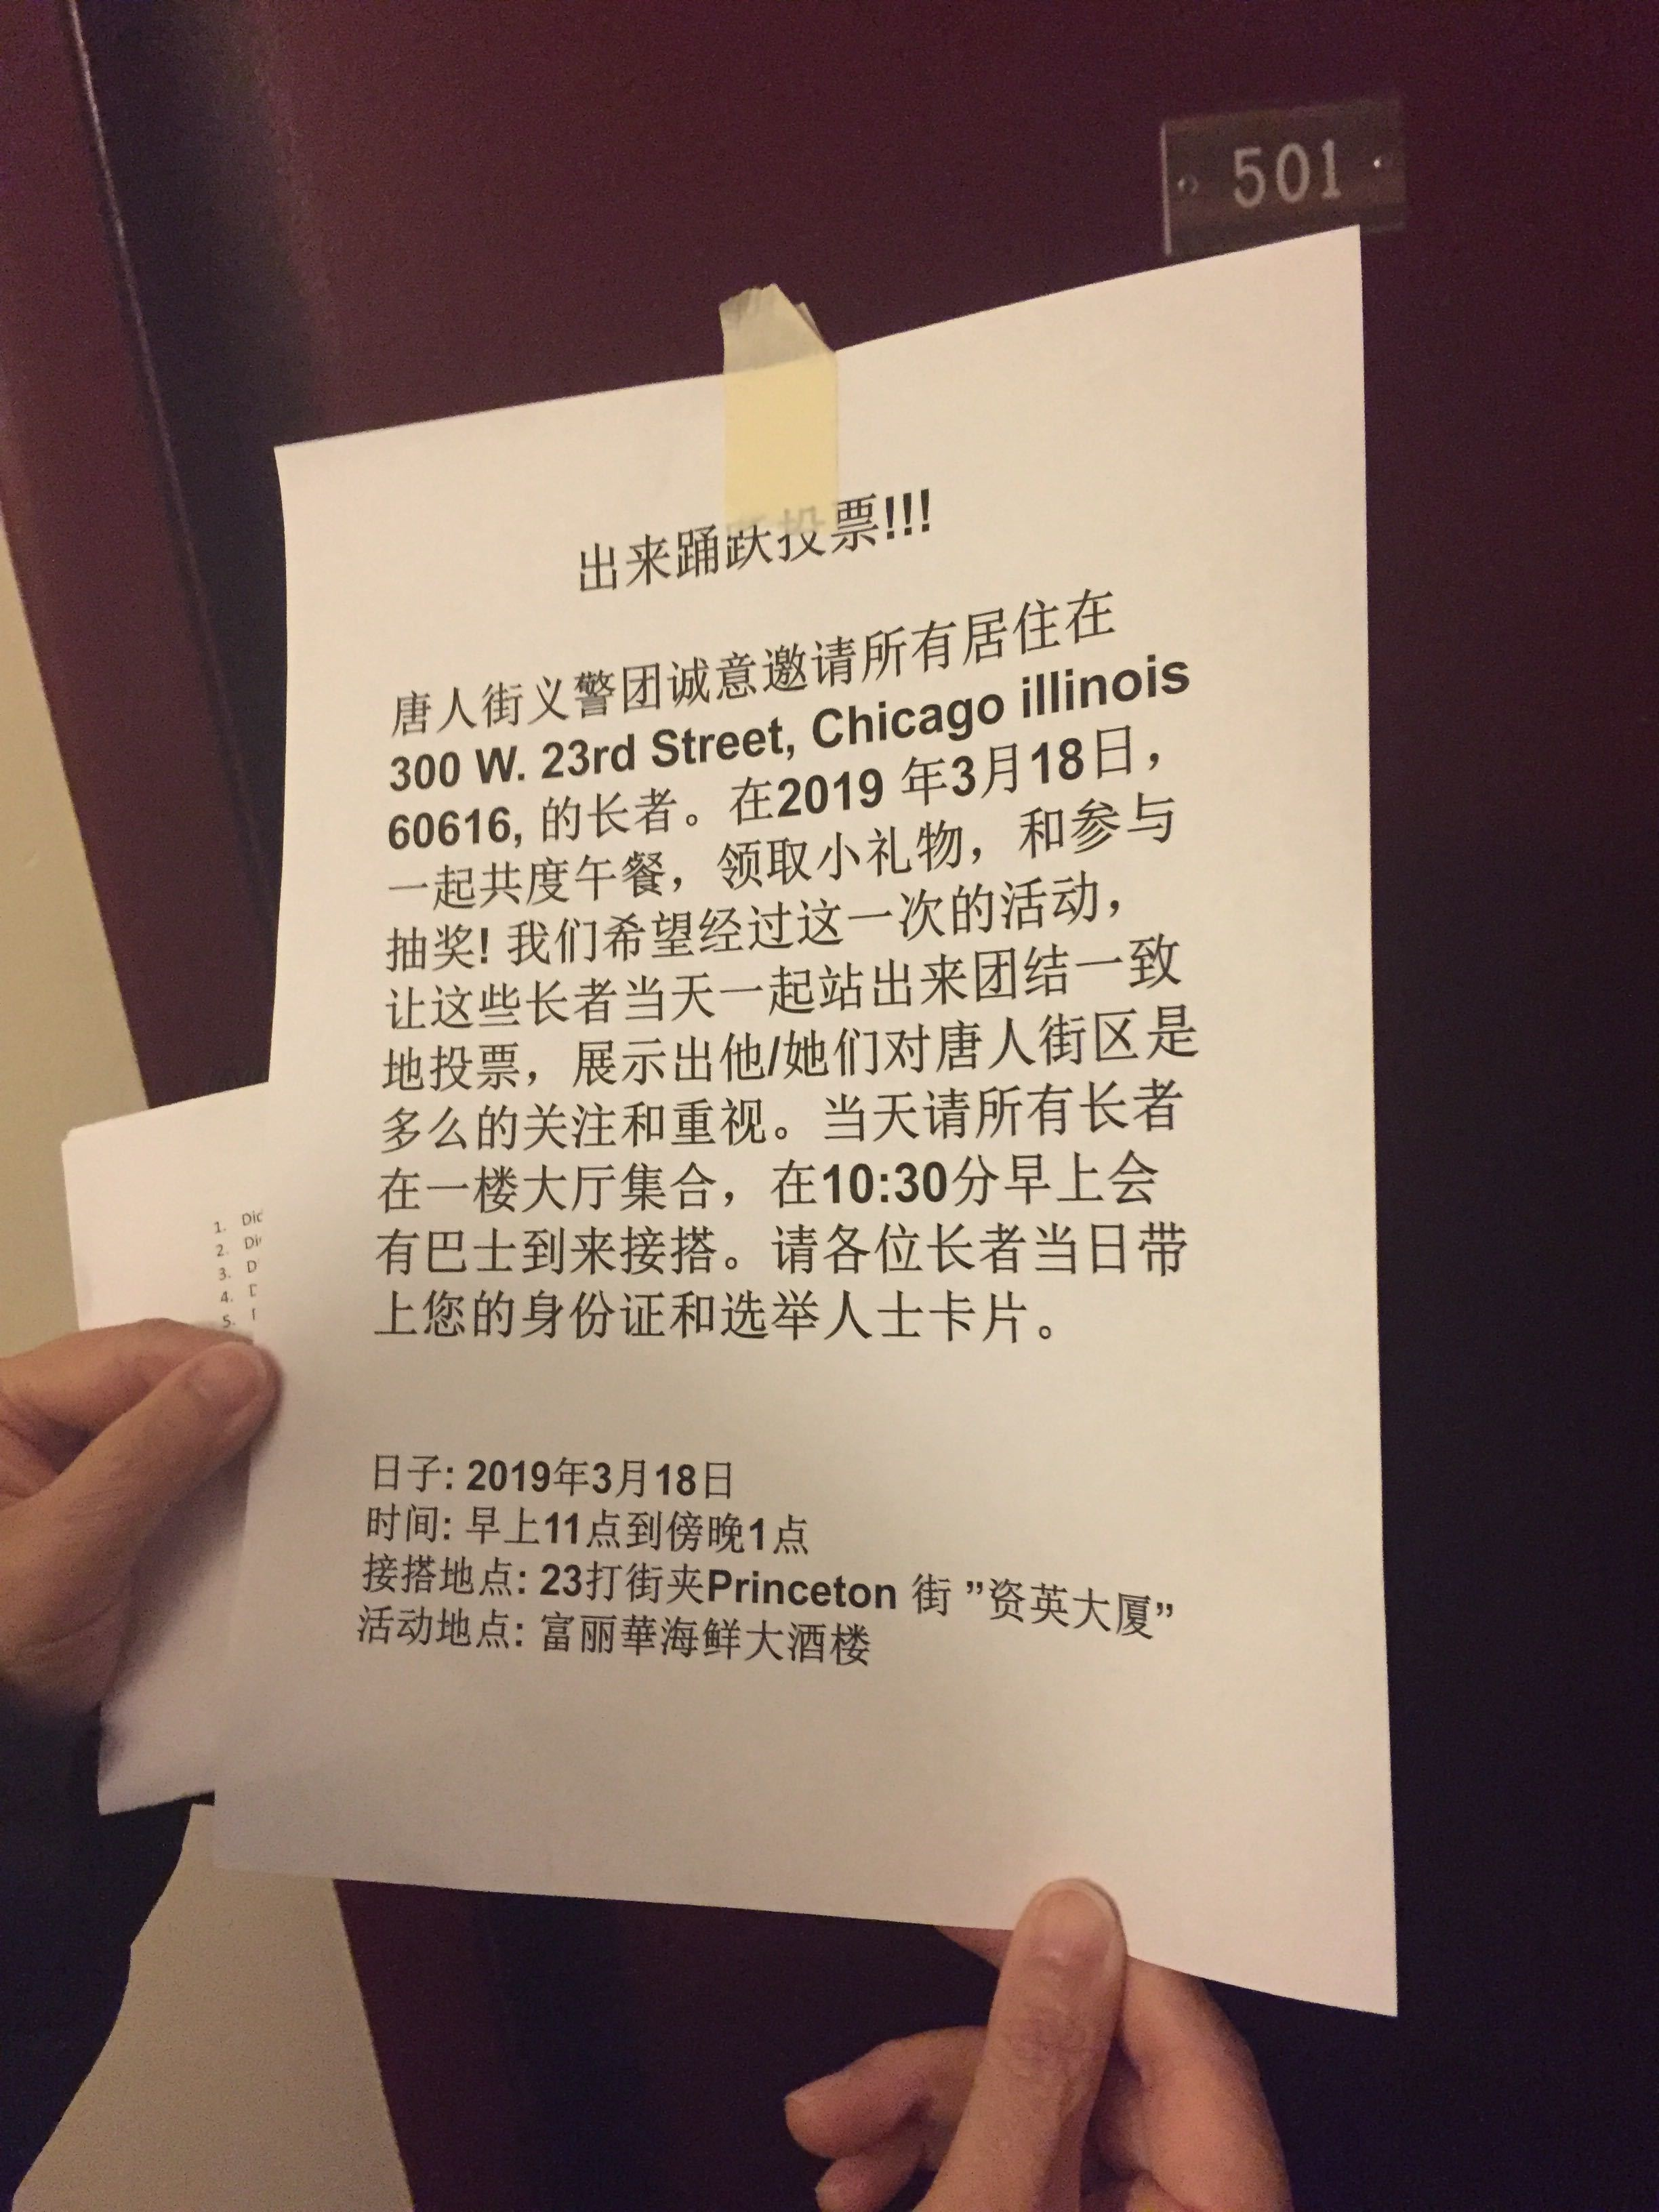 This note was posted on the door of a resident in the Chinatown Elderly Apartments. It indicates that a volunteer policing group invited residents to bring identification and their absentee ballots for a lunch on March 18 with gifts and a raffle.  Advocates say that political campaigns have long targeted Chinatown elderly residents for their votes.